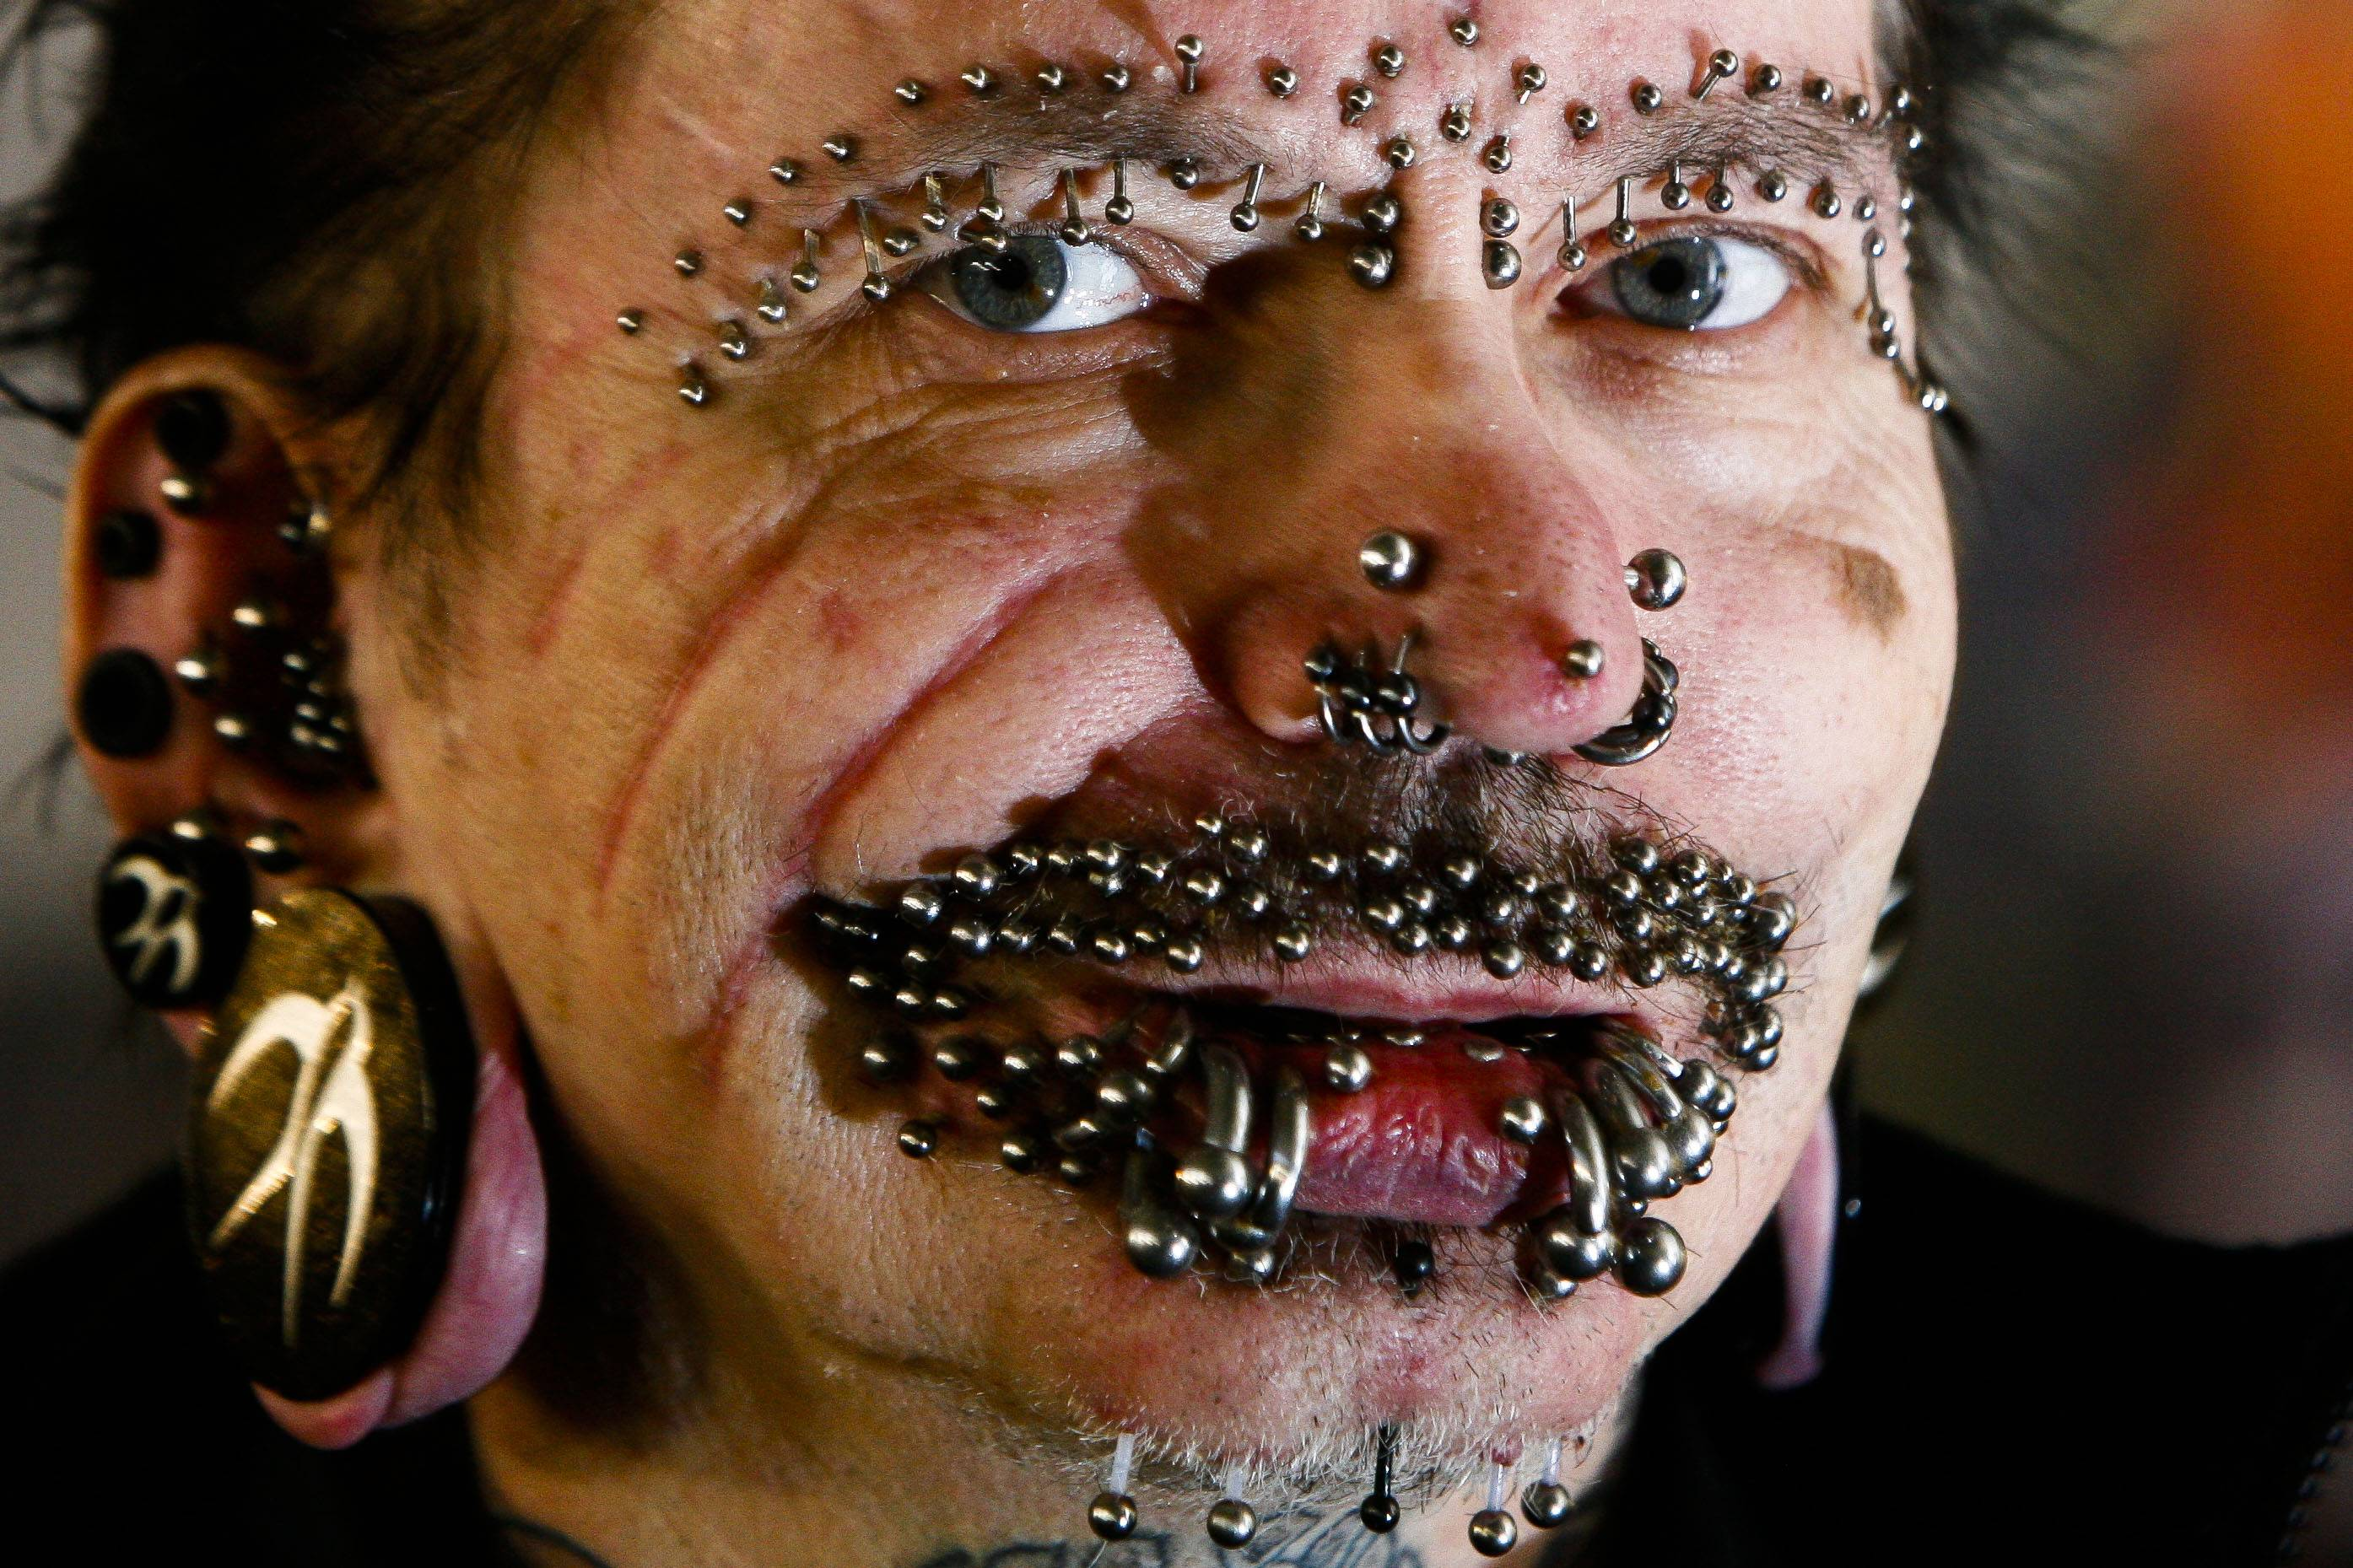 In this Saturday, Dec. 4, 2010 file photo, German Rolf Buchholz shows his face with 168 piercings as he visits the 20th Tattoo Convention in Berlin. A Dubai nightclub that hoped to feature Buchholz, who holds the world record for having the most piercings, said in an emailed statement Sunday, that he was refused entry to the Gulf city because of security concerns. The German man now has 453 piercings, according to Guinness World Records.